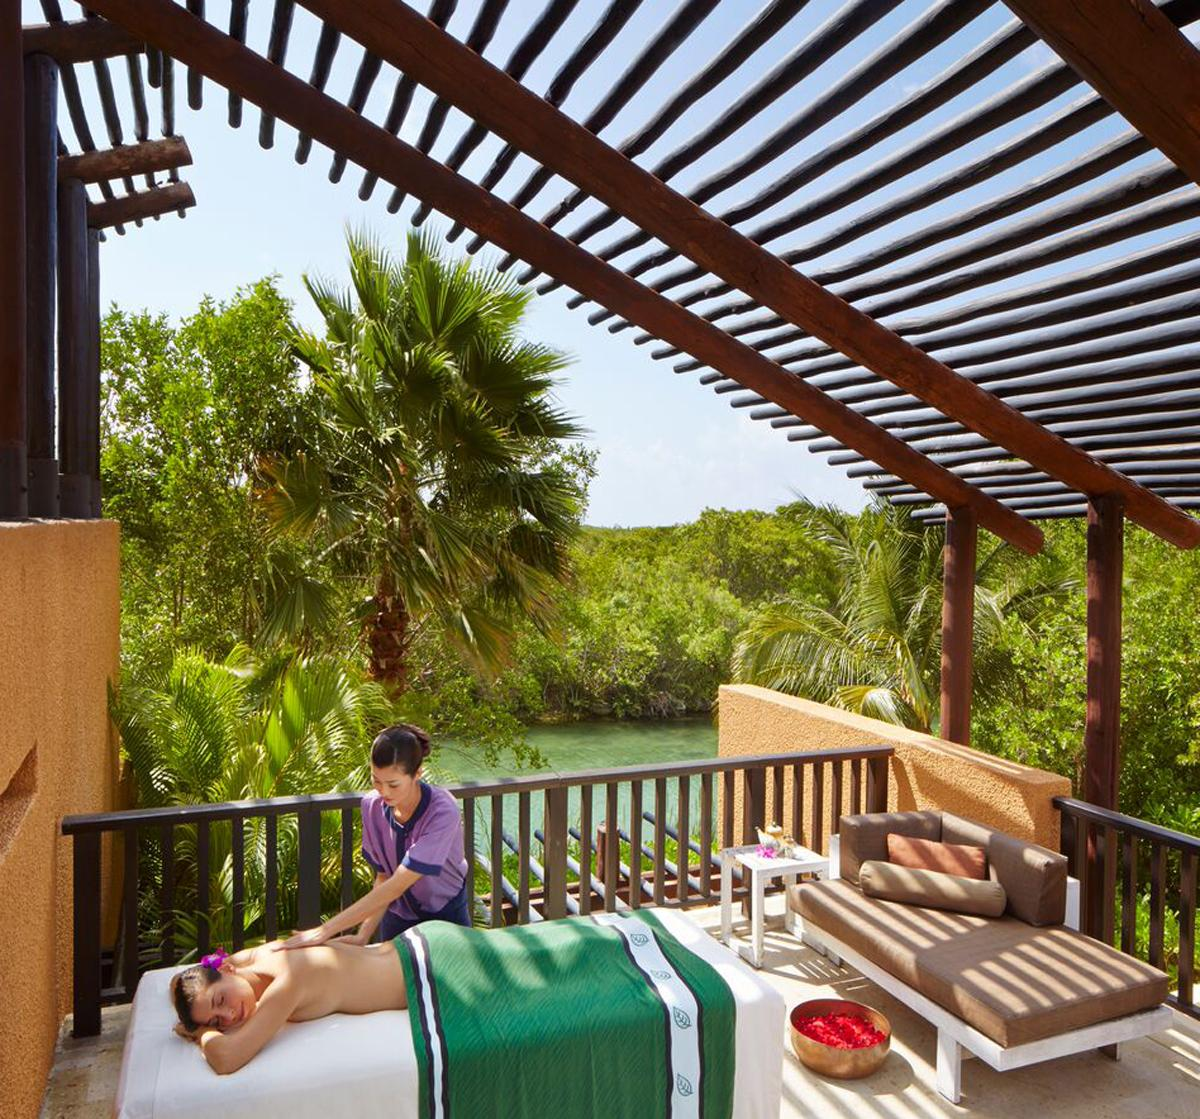 Based in Singapore, Banyan Tree currently manages or has ownership interests in more than 60 spas, as well as 30 hotels and resorts, around the world